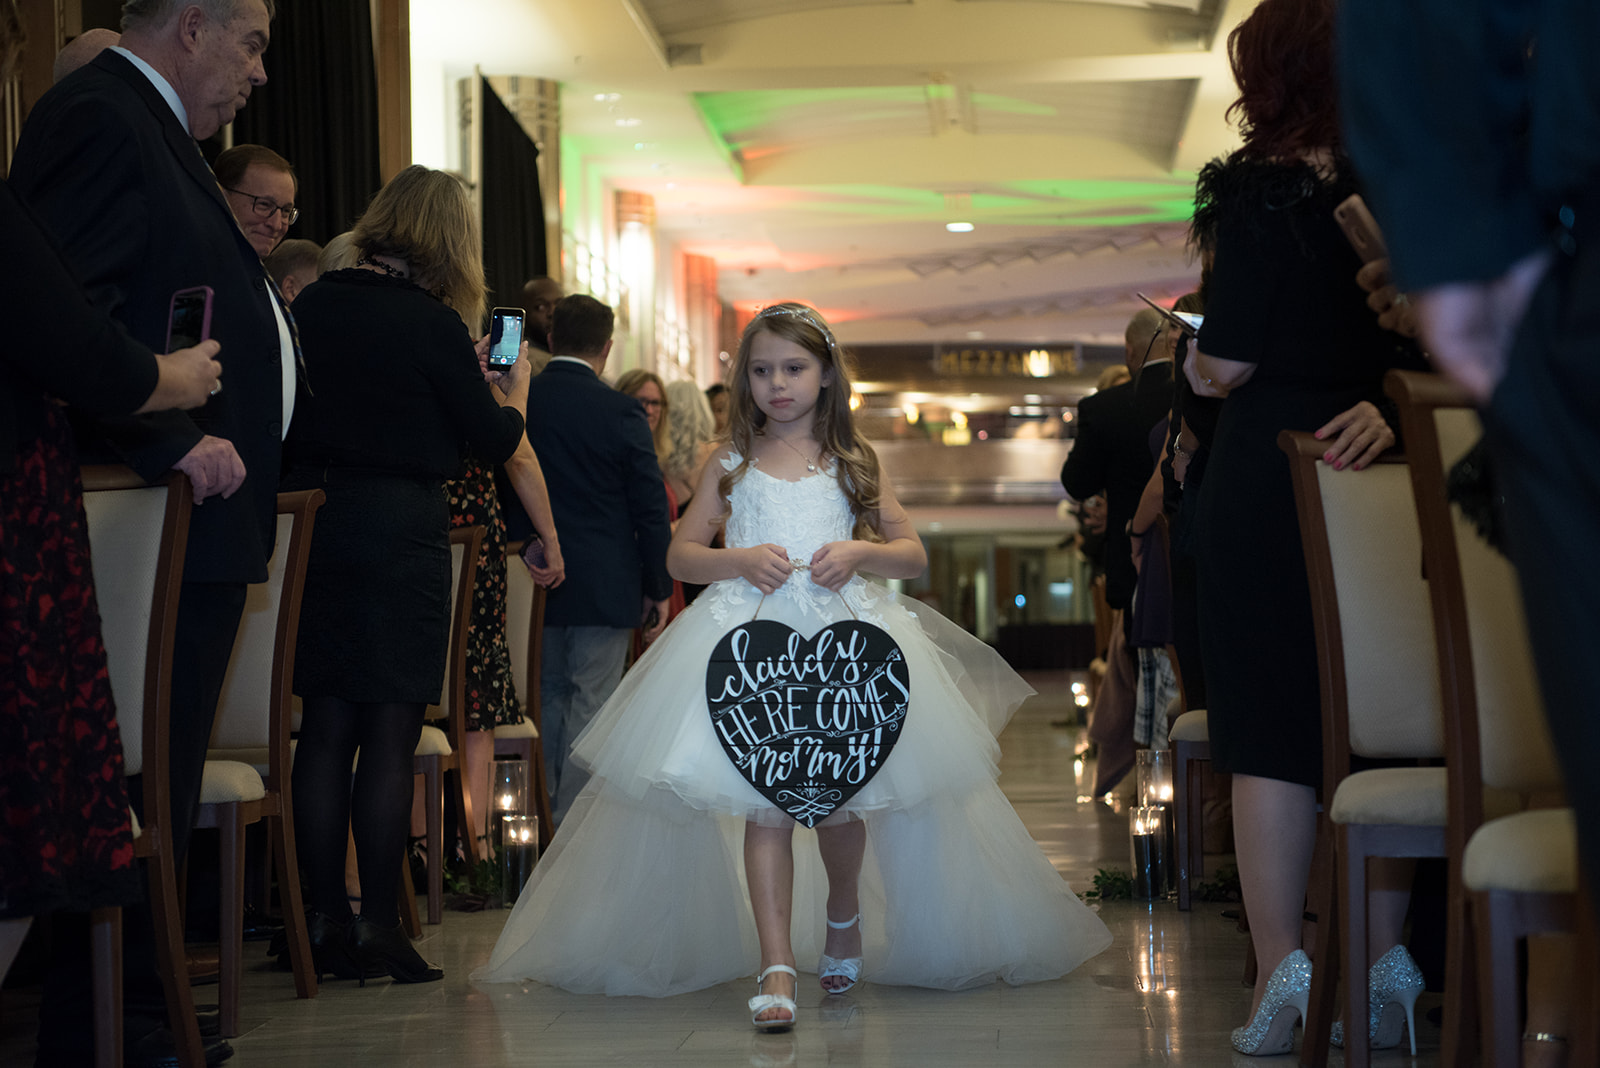 """flower girl carrying a sign that says """"daddy here comes mommy"""" - Pearl Weddings  & Events"""